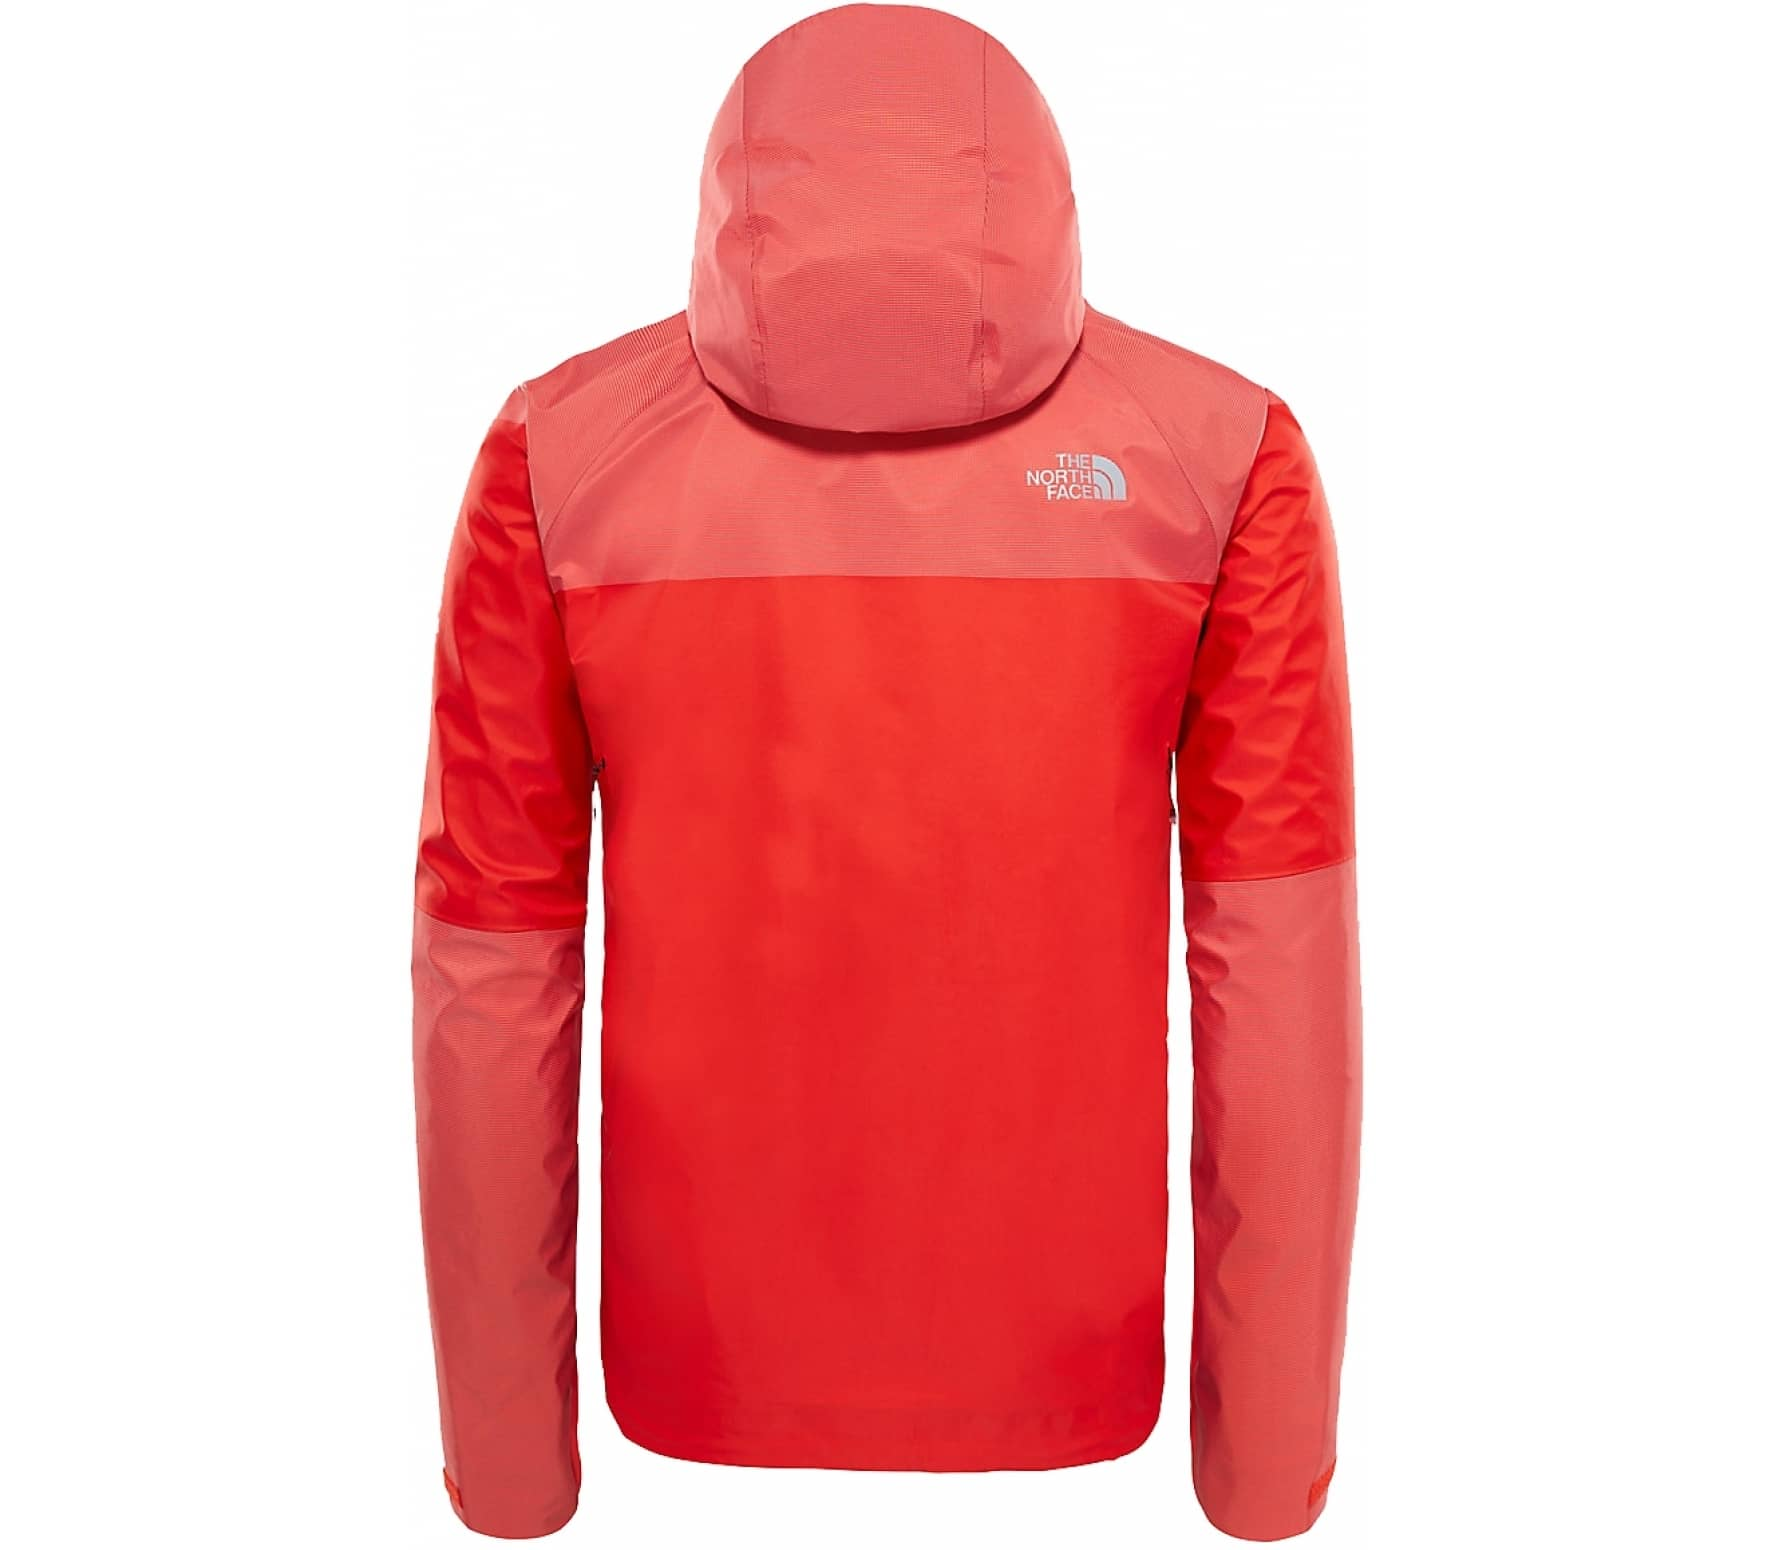 ac85a067 The North Face. Summit L5 FuseForm? GTX® C-Knit men's hard shell jacket  (light red)